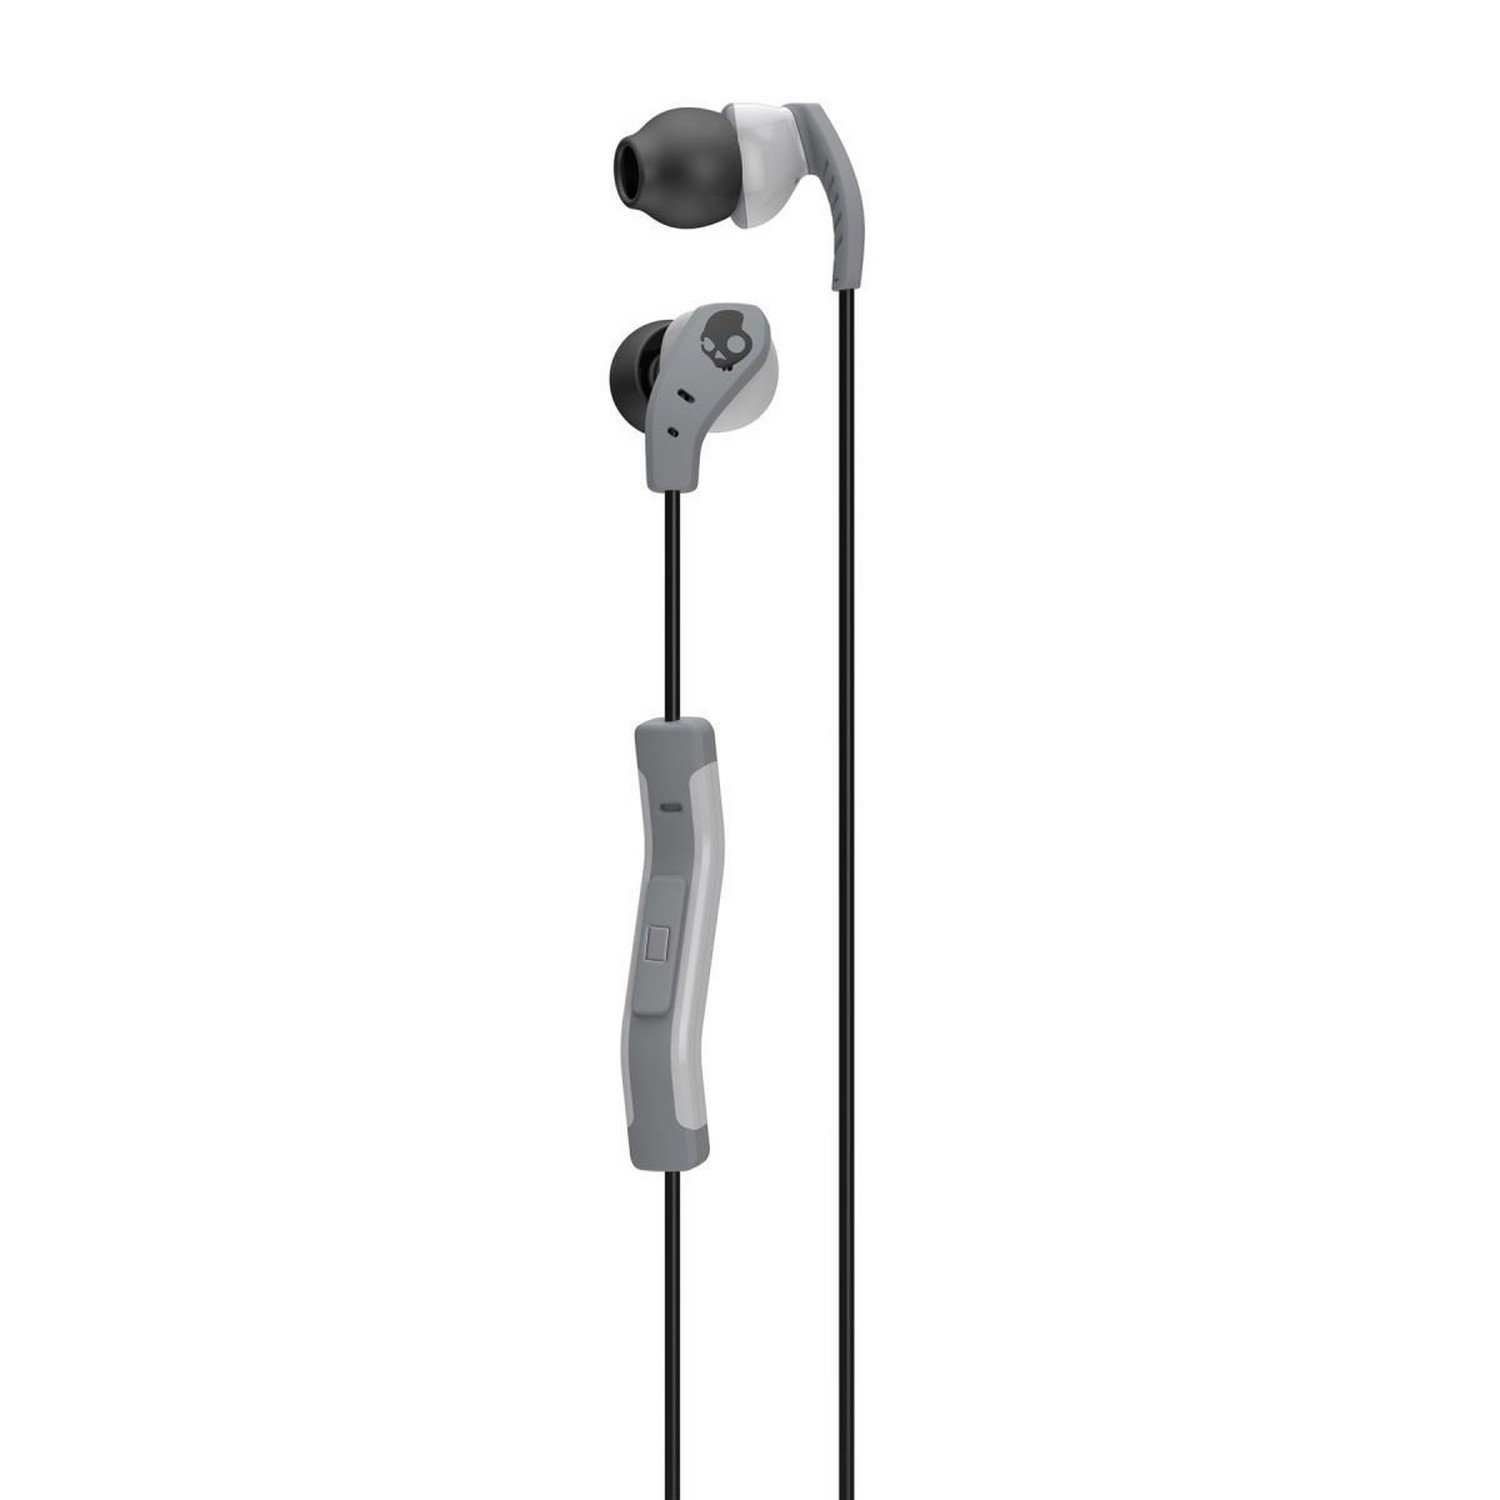 Skullcandy Method In Ear Sport Earbuds With Mic Gray At Mighty Inkd 20 W 1 Black Image